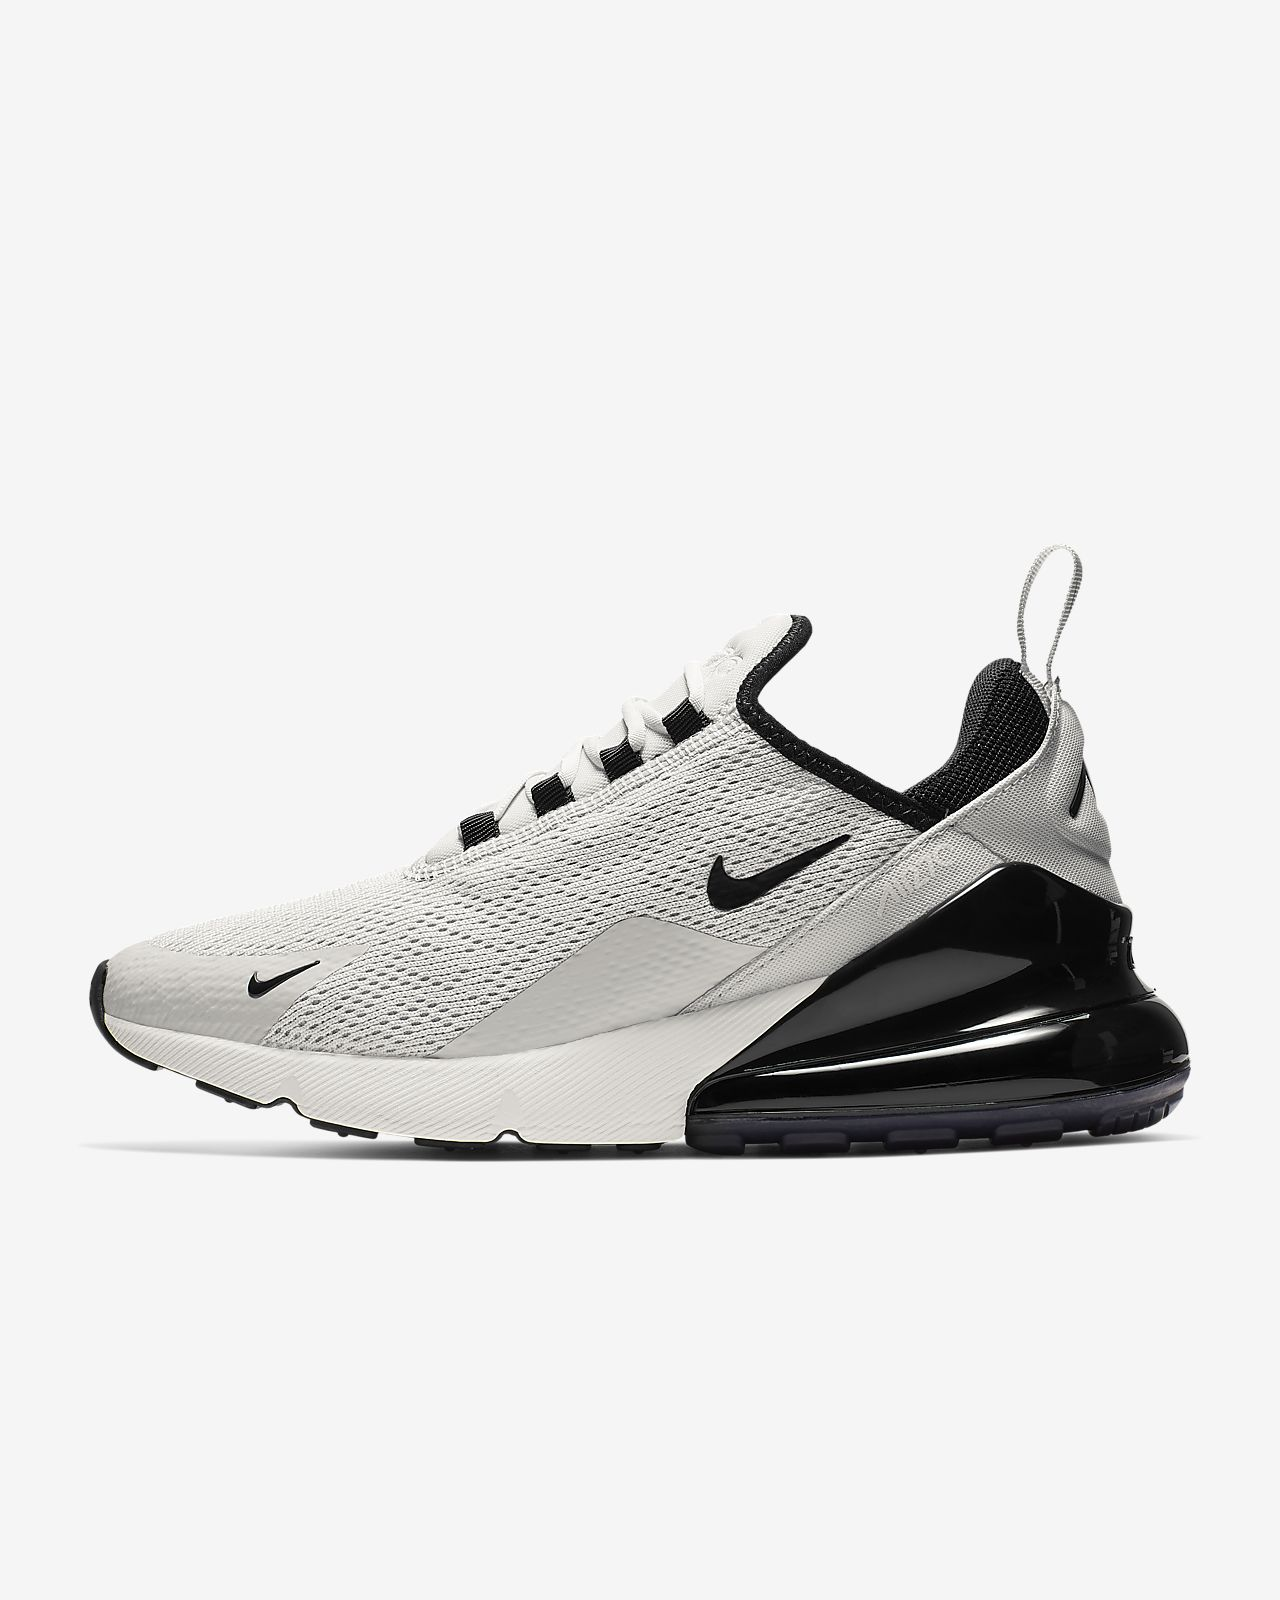 in stock 0f41e 874bd Women s Shoe. Nike Air Max 270